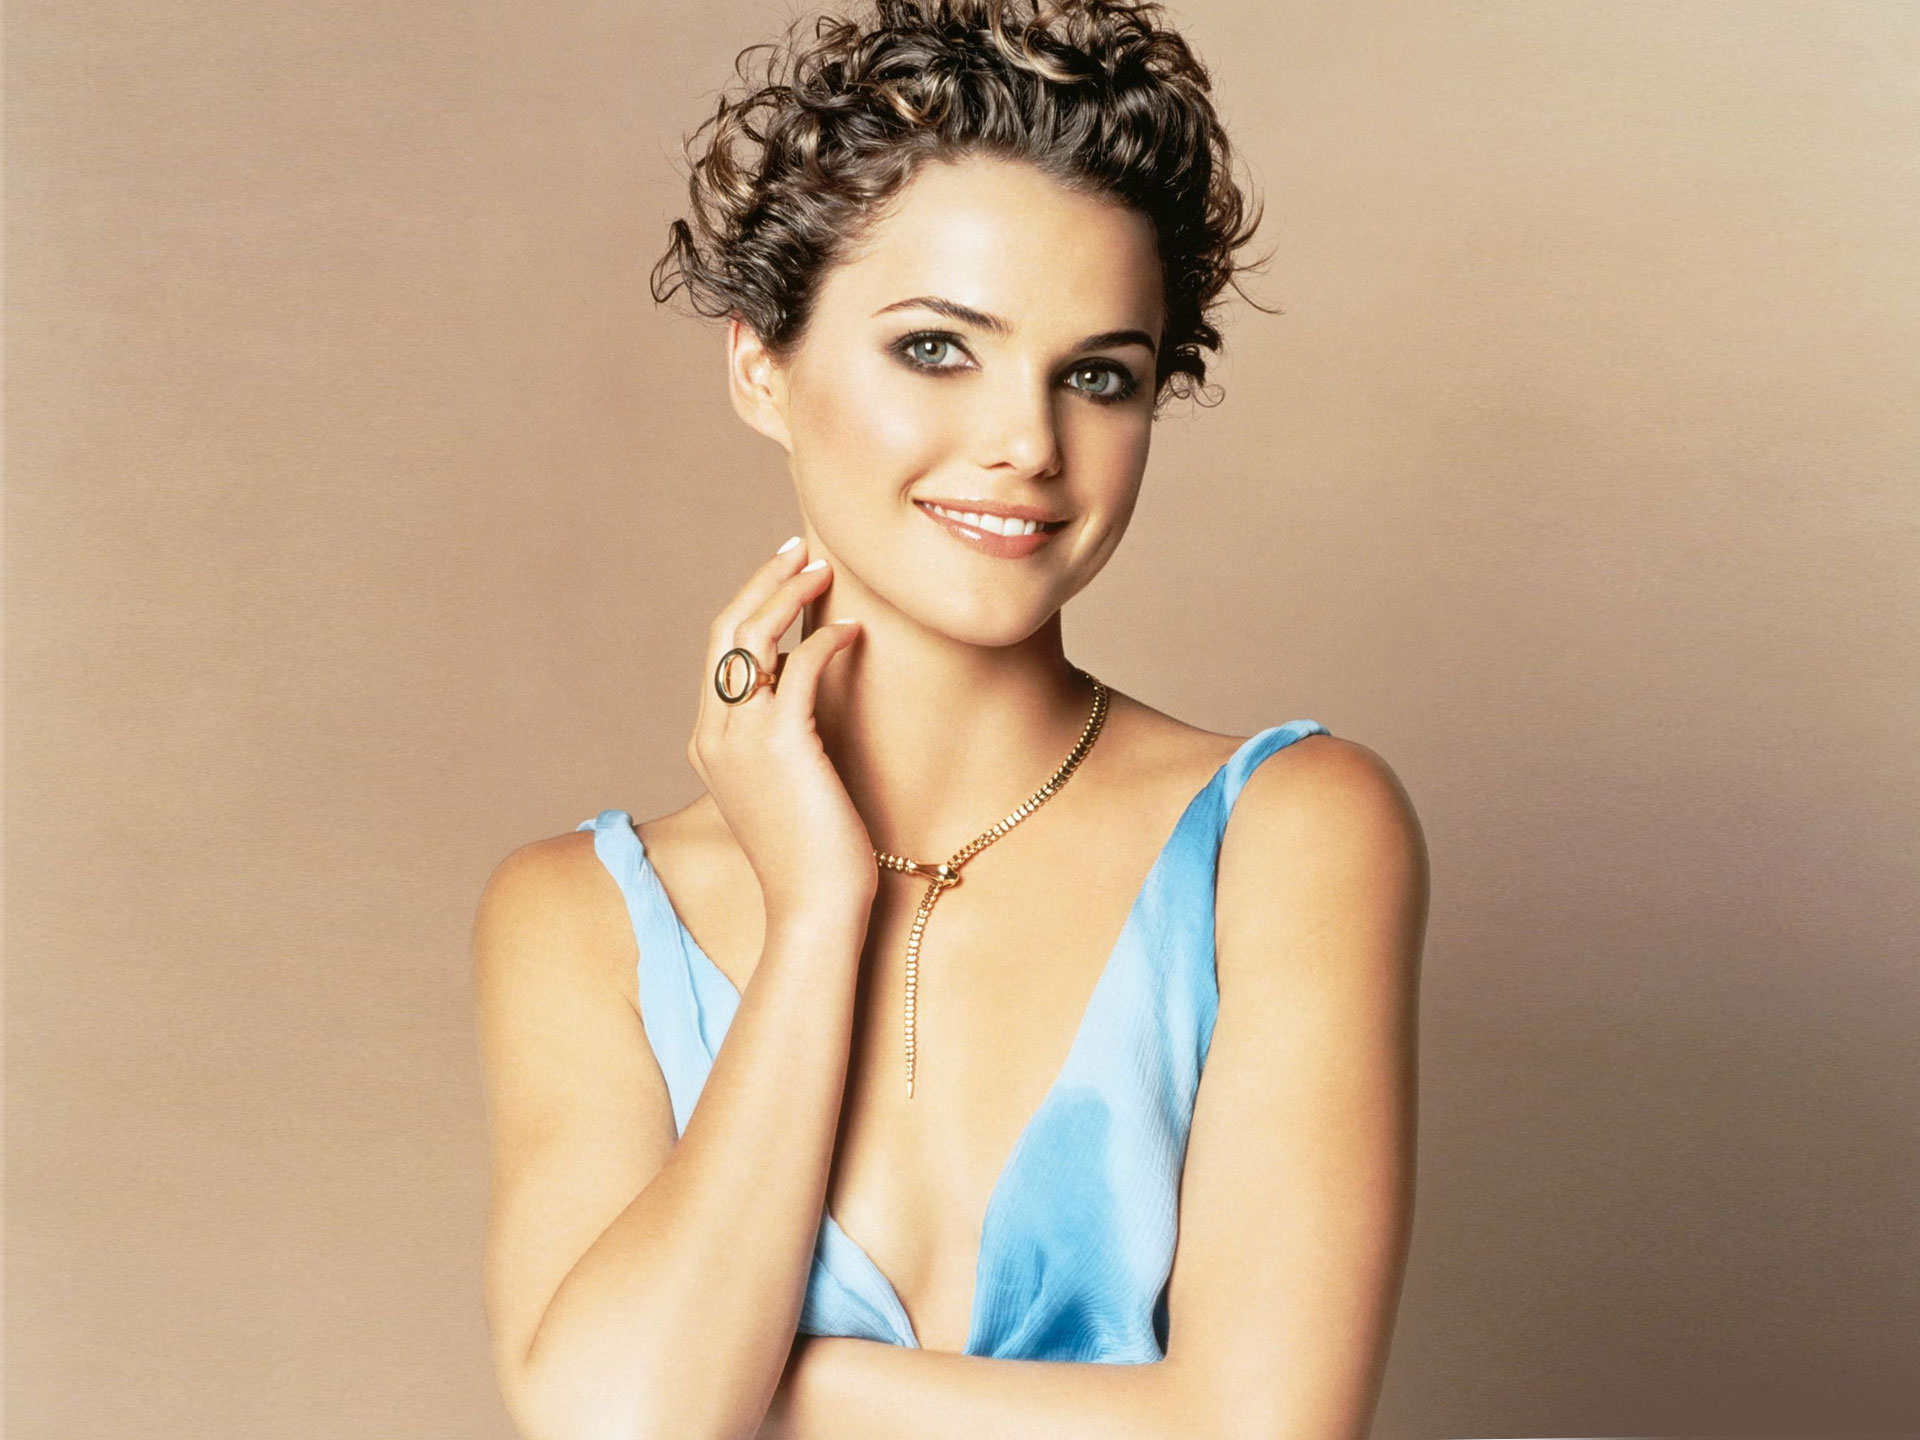 August Rush Actress Keri Russell 417.76 Kb